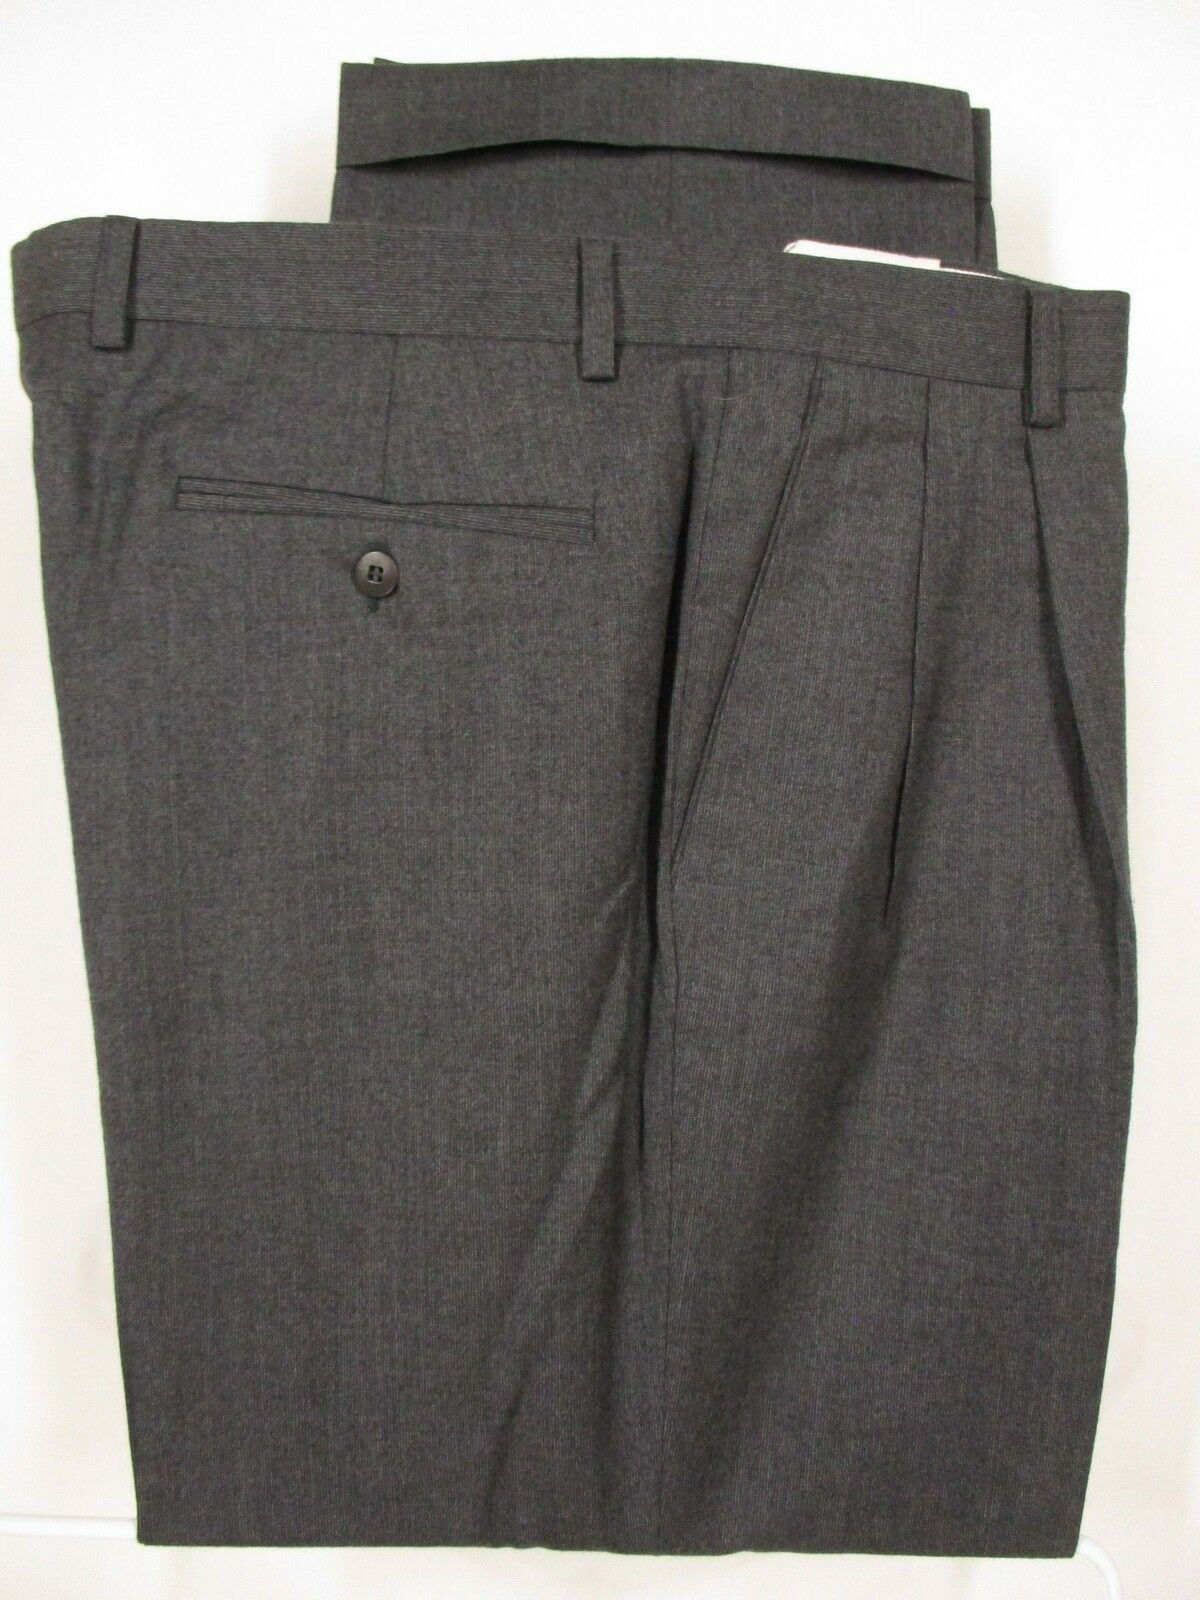 Zanella Mens Grey Pleated Wool Dress Pants 39x28.5